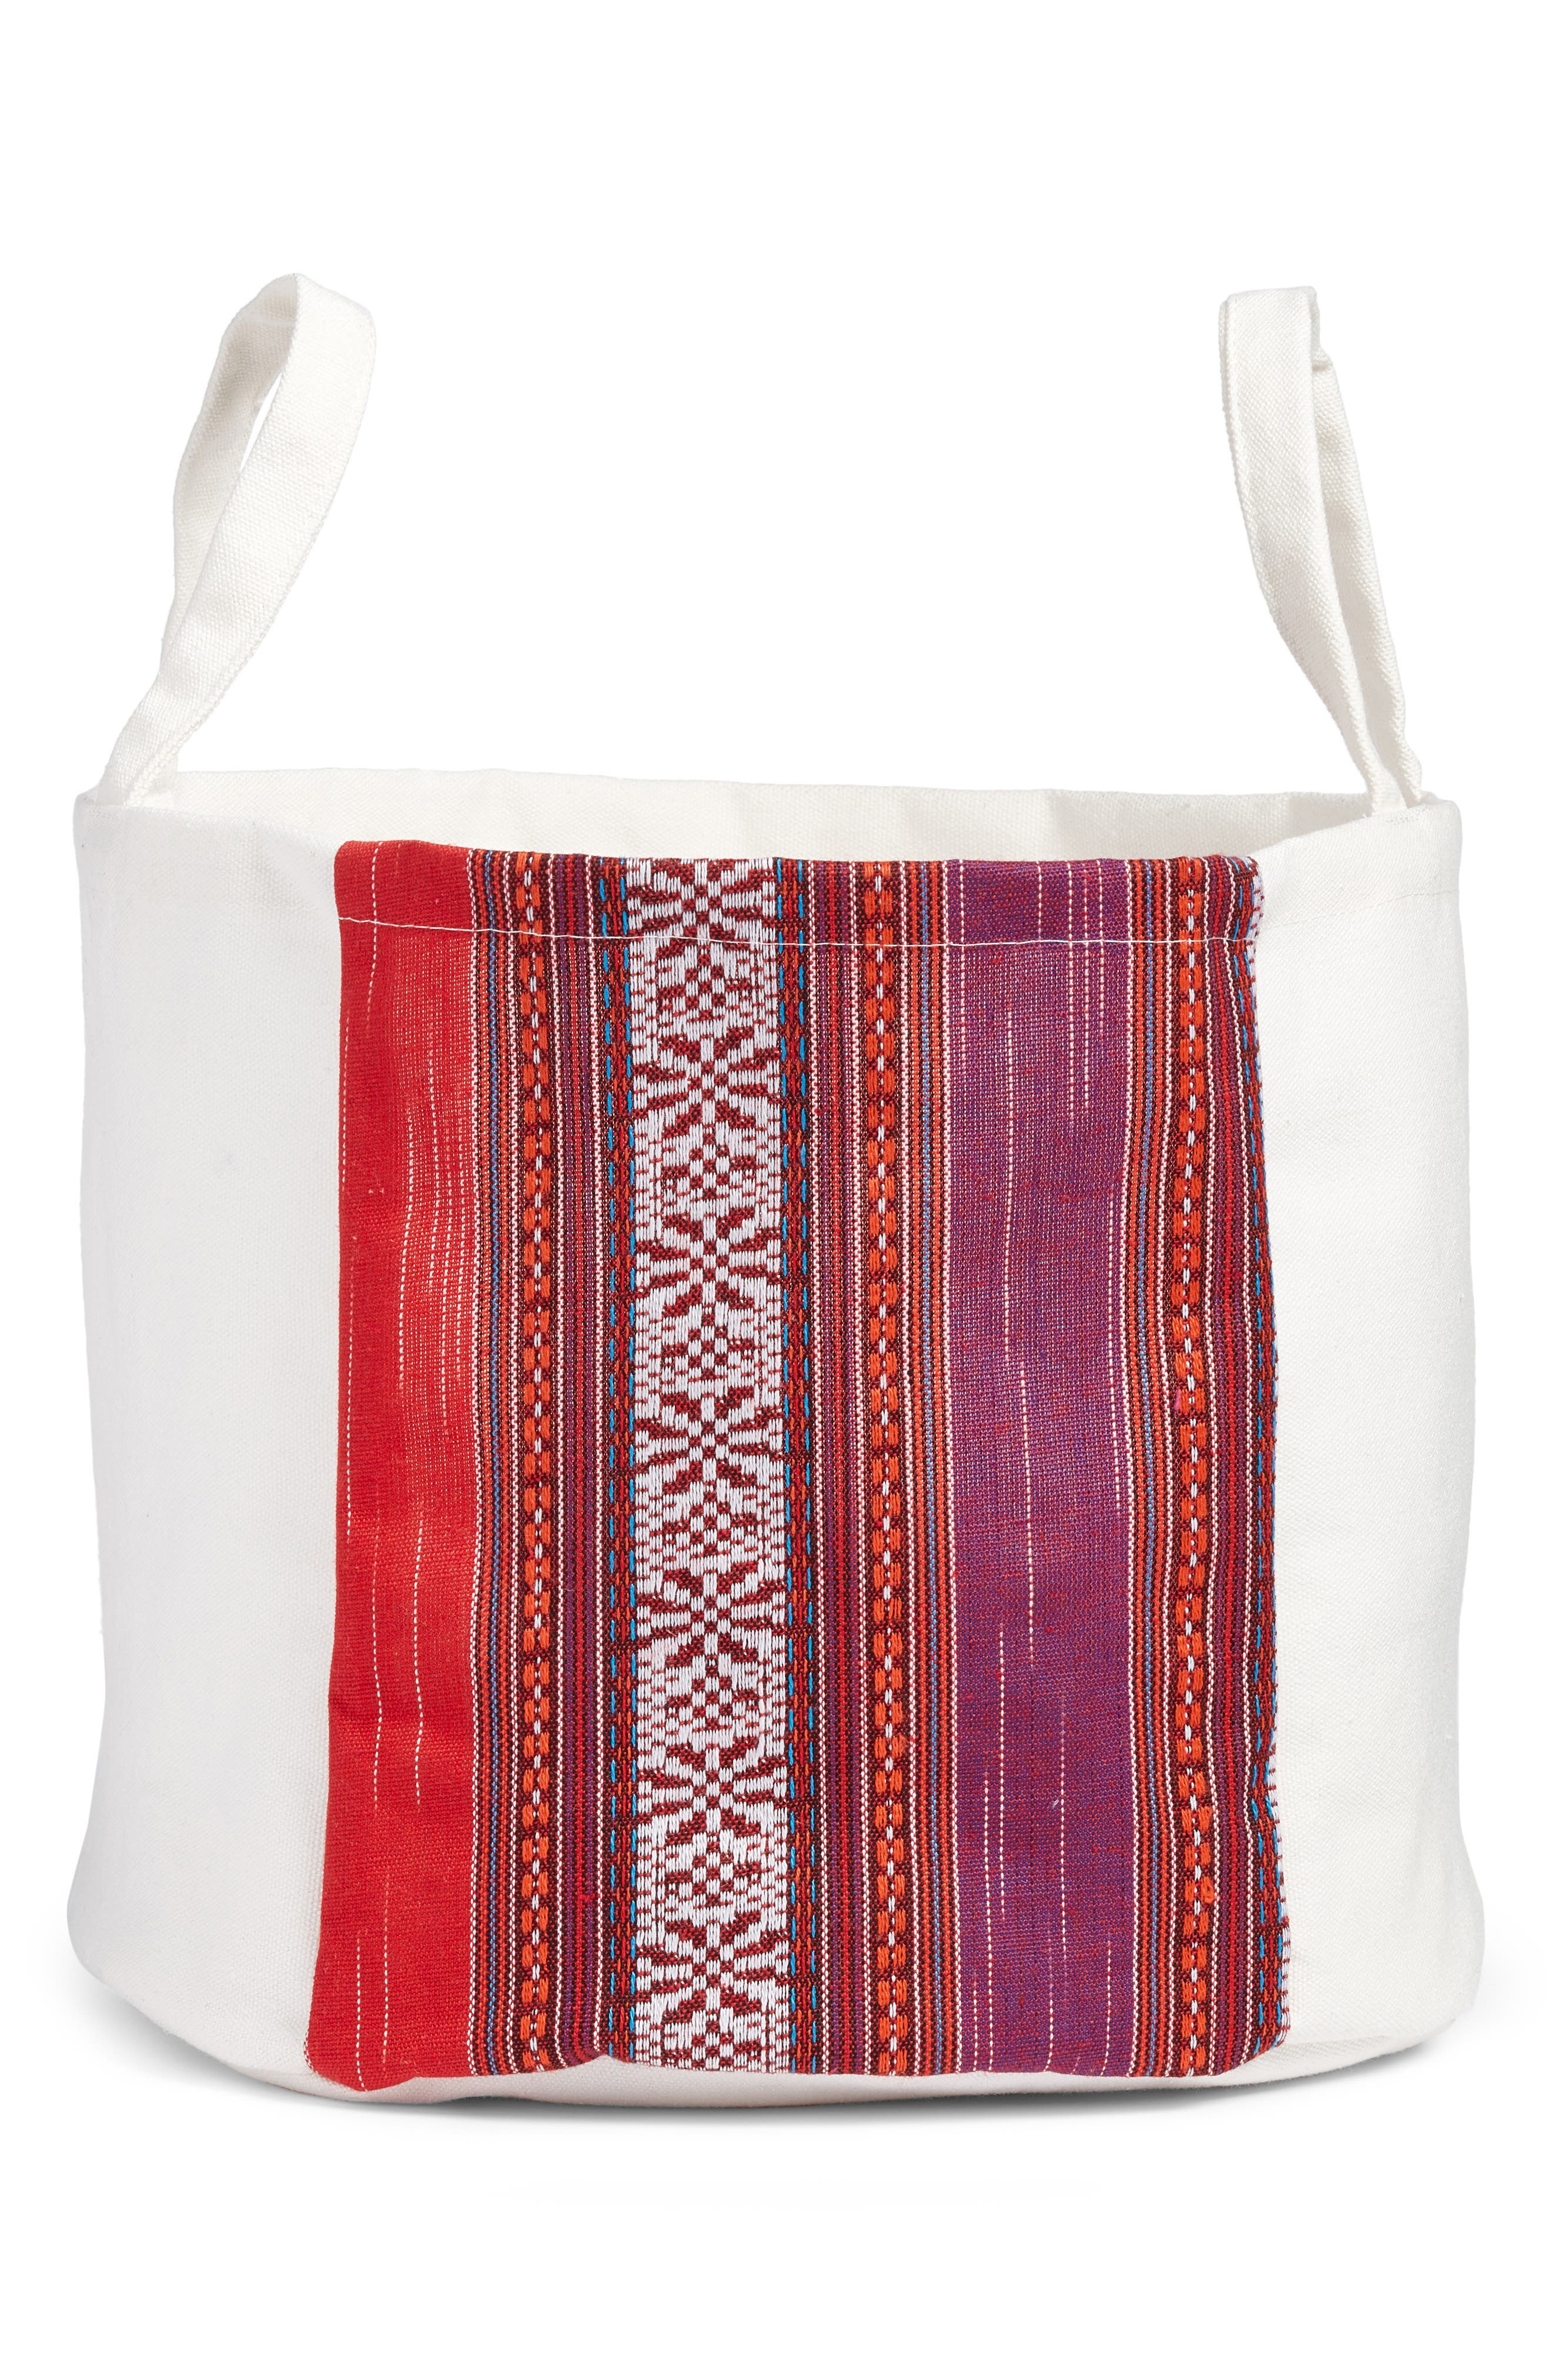 Levex Boho Canvas Basket,                         Main,                         color, Multi